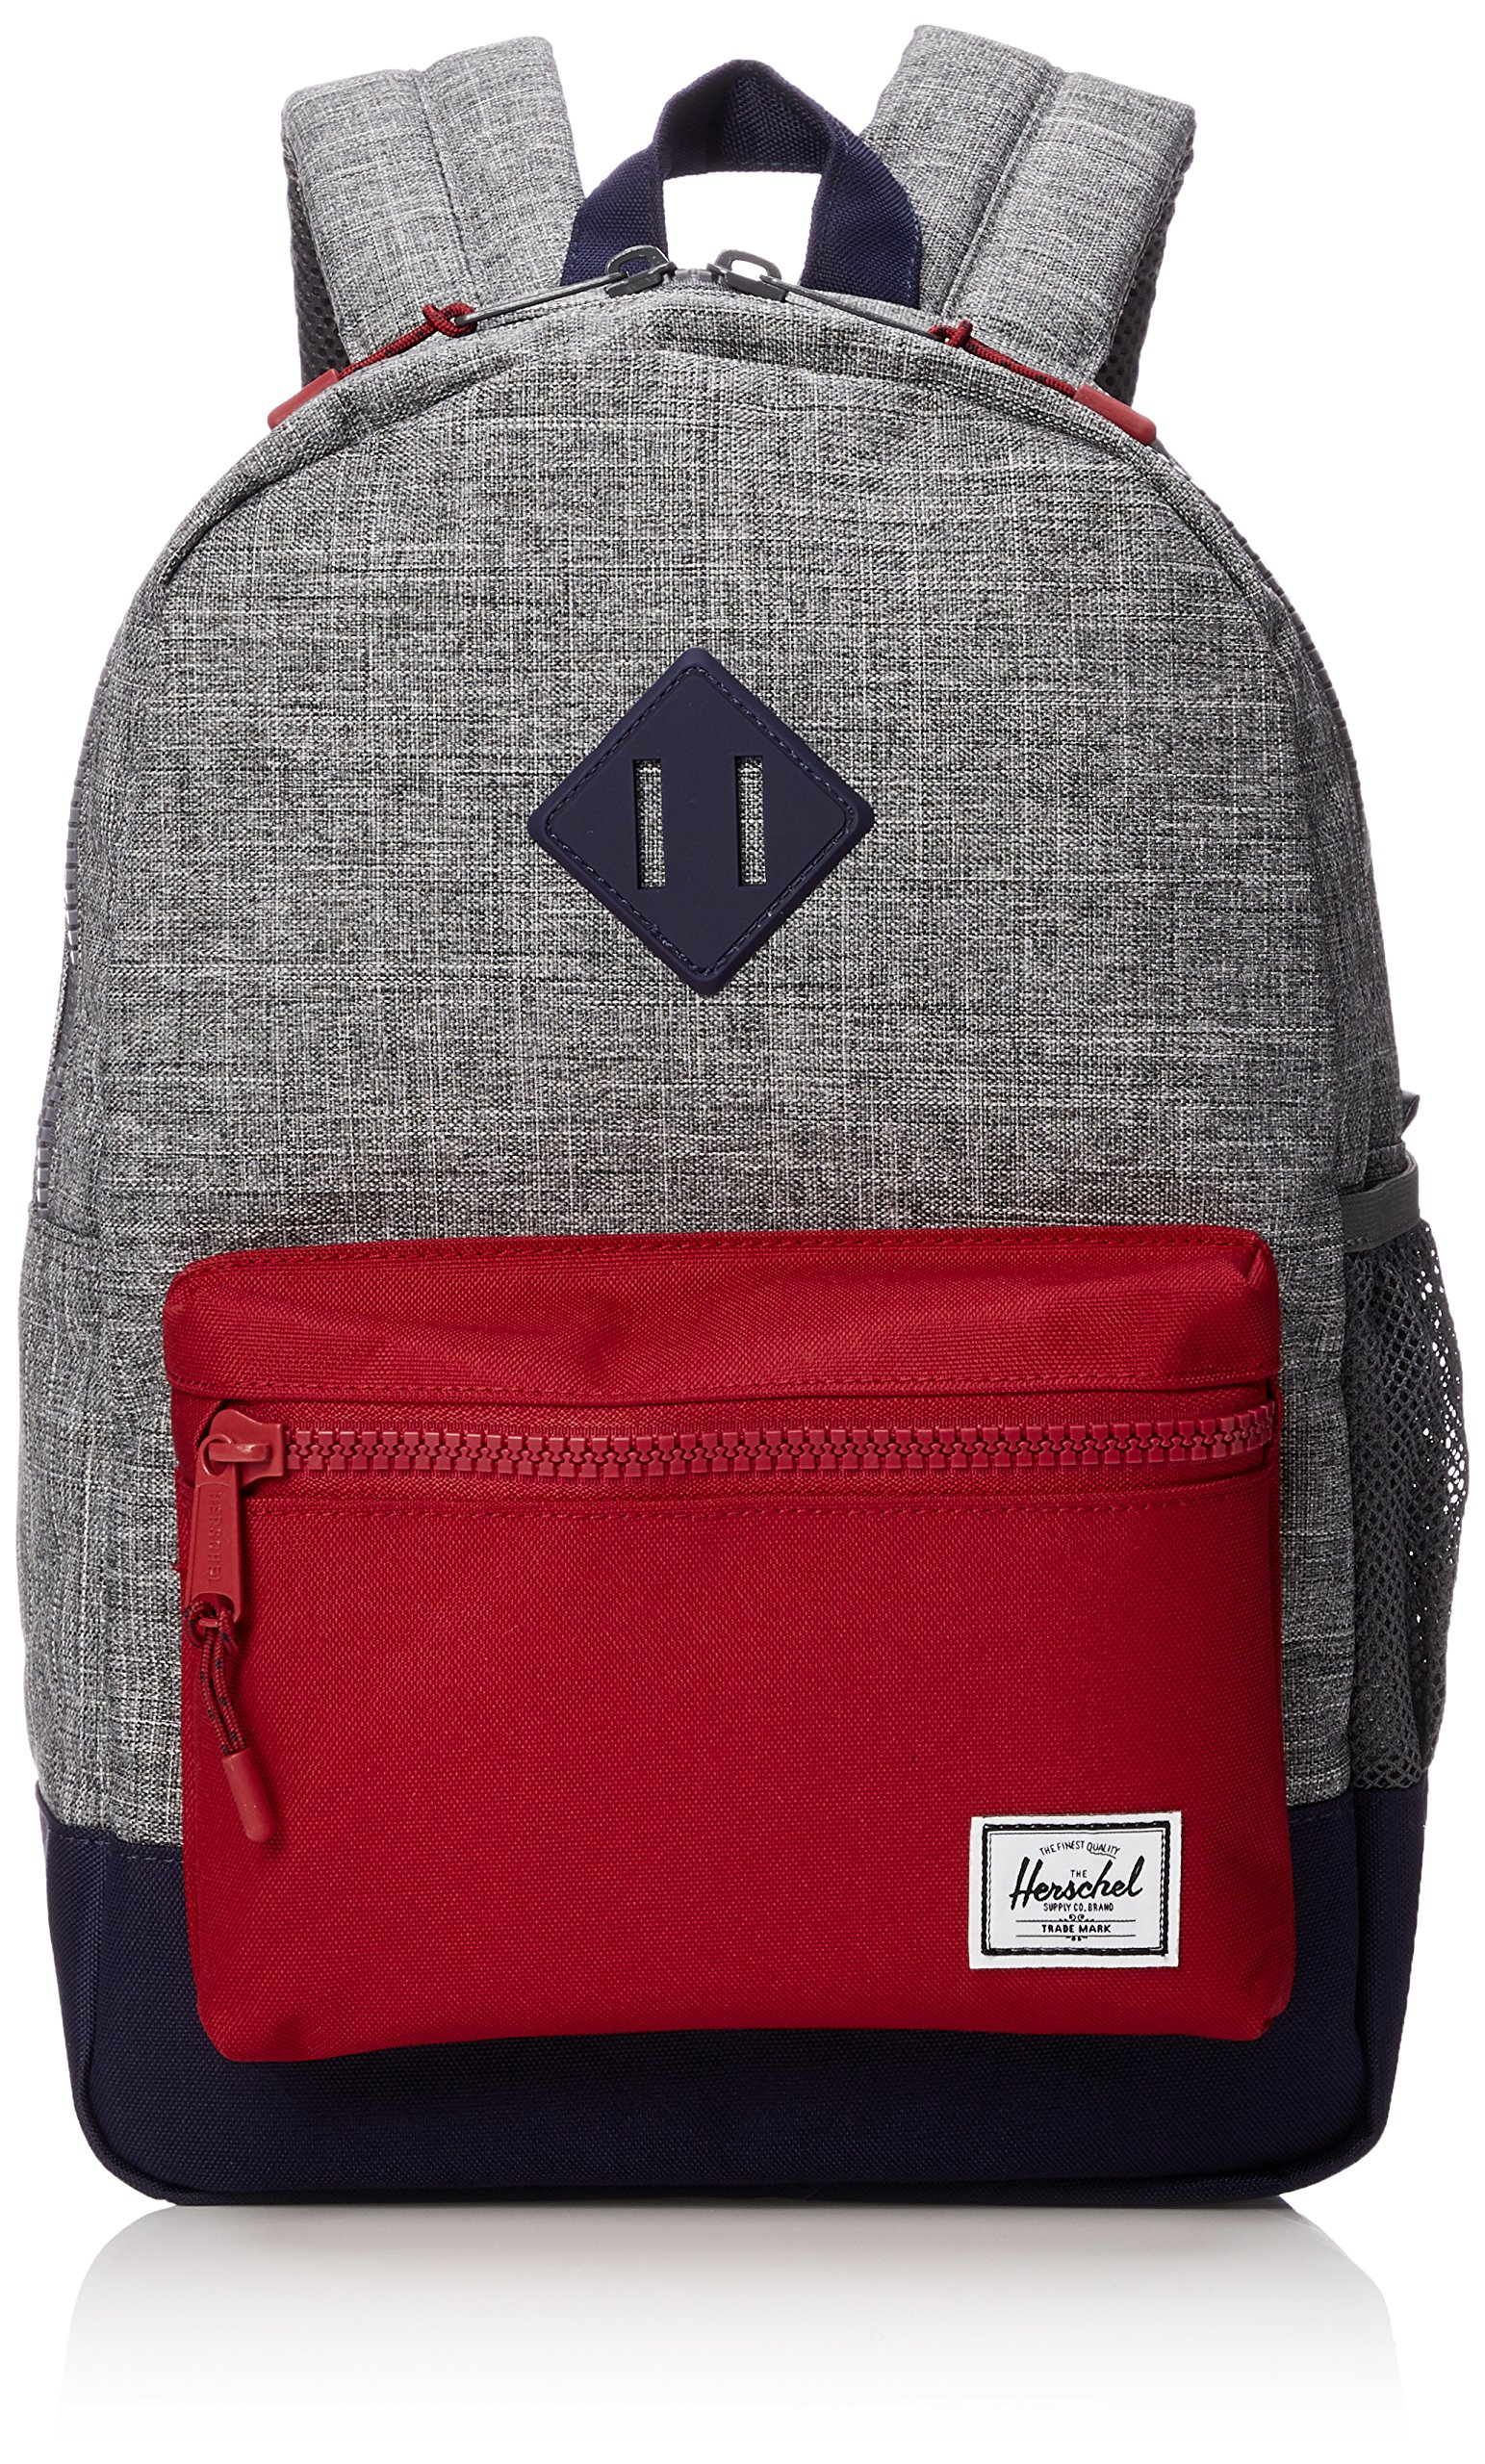 Herschel Supply Co. Kids' Heritage Youth Children's Backpack, Raven Crosshatch/Peacoat/Red, One Size